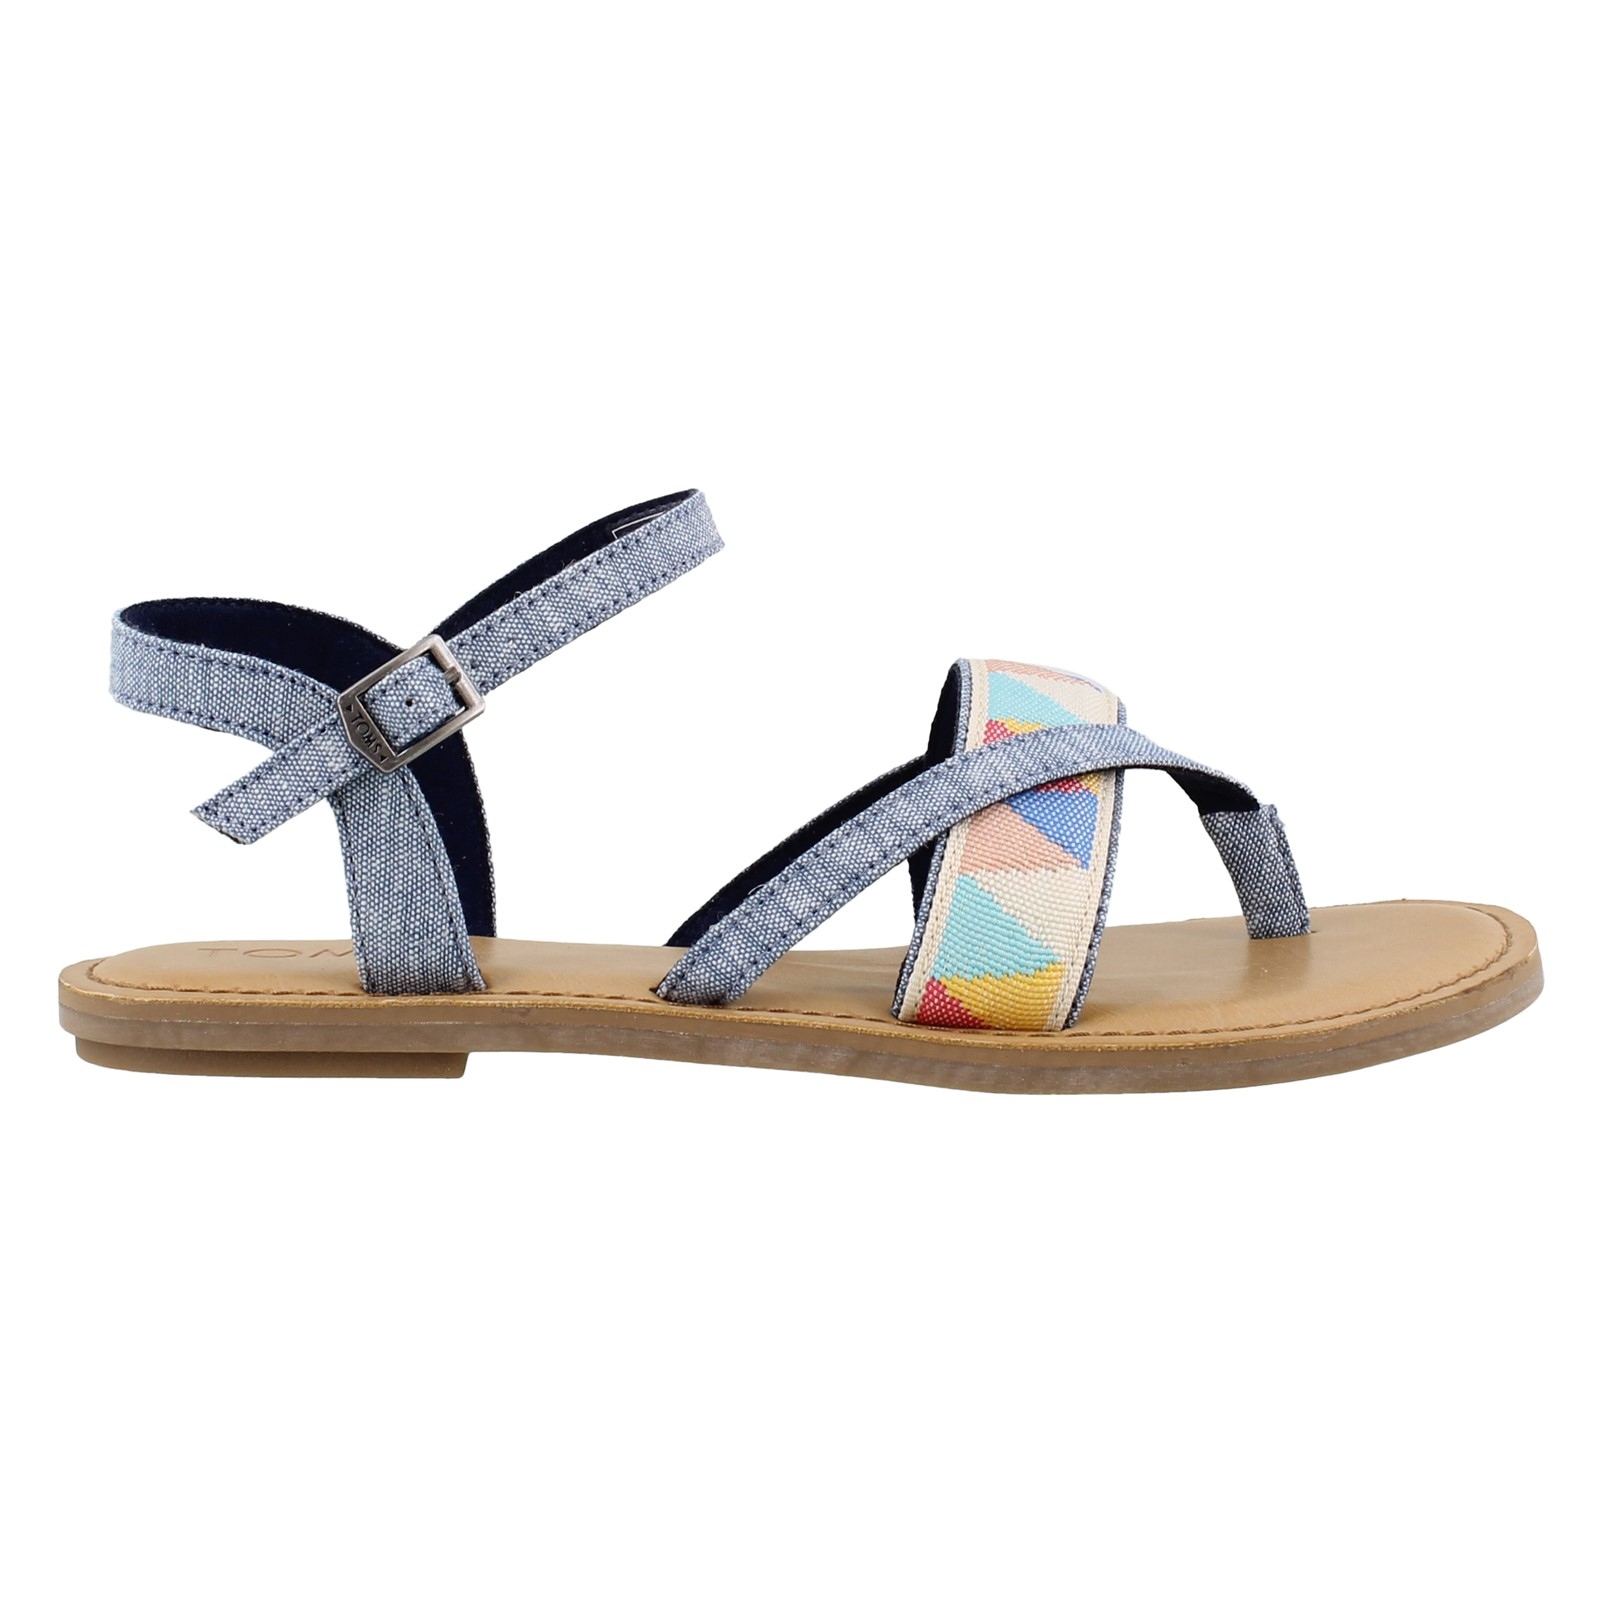 Women's Toms, Lexie Sandals